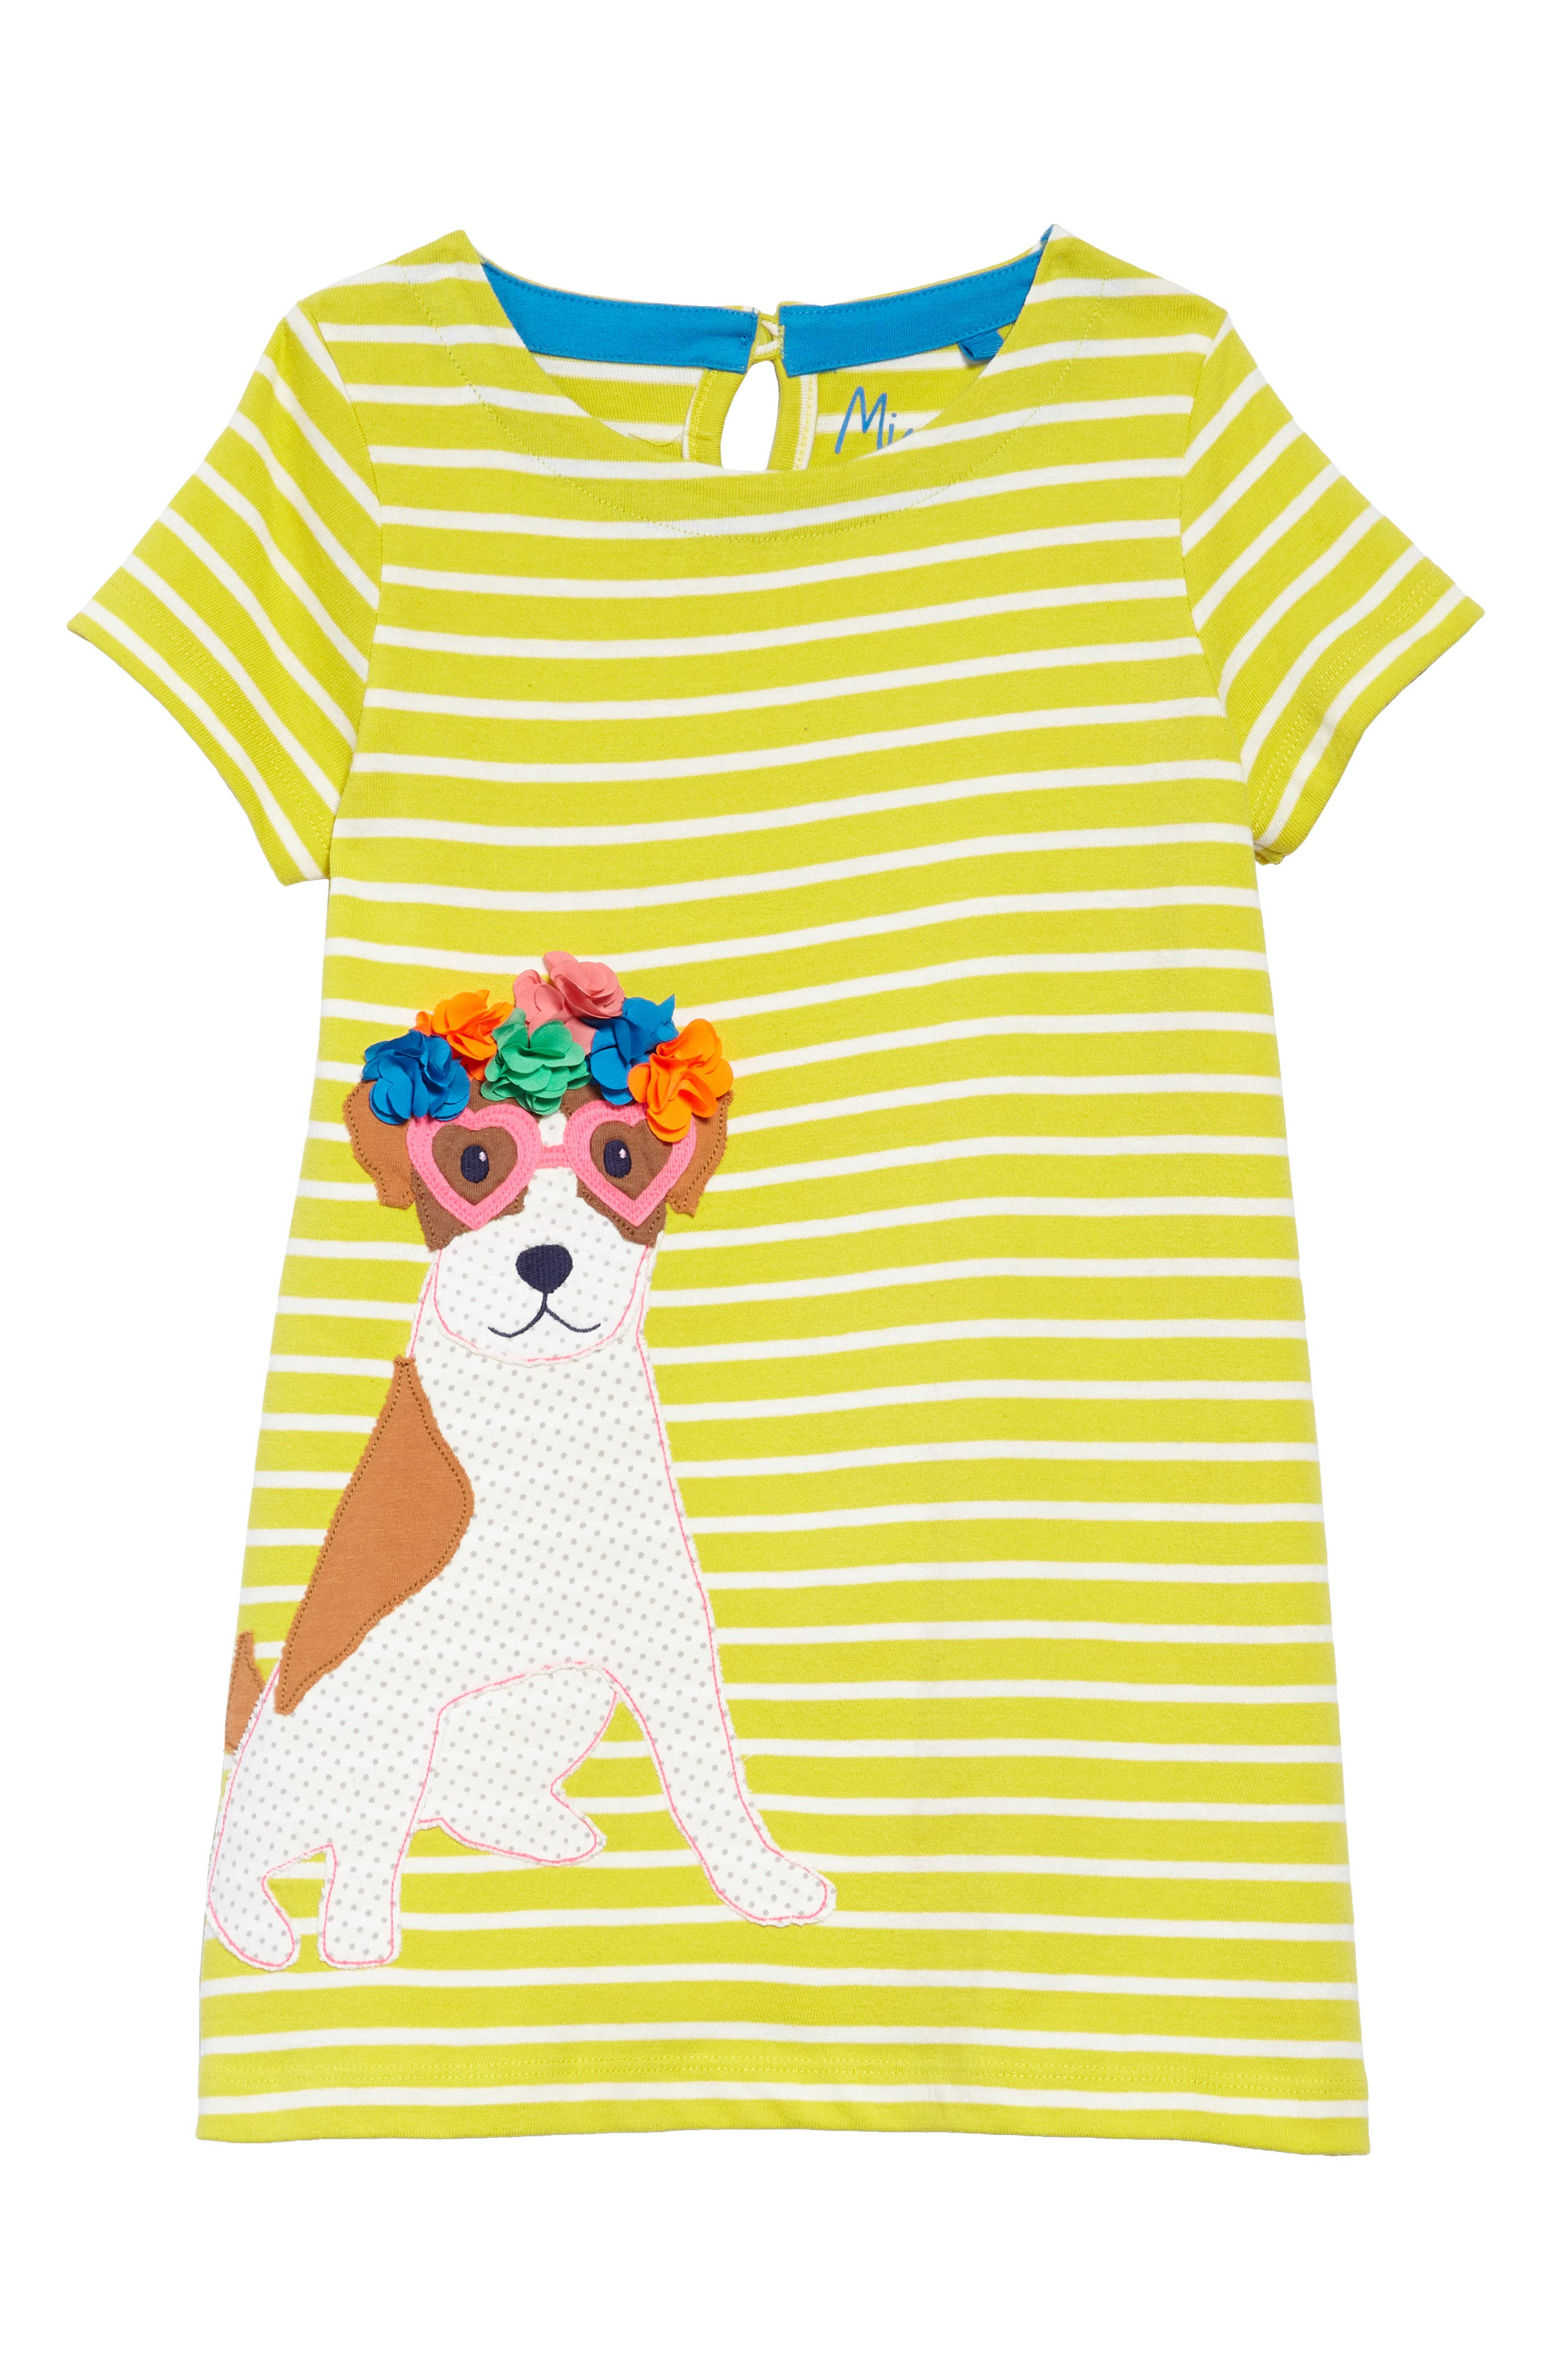 Dog Appliqué Striped Jersey Dress,                             Main thumbnail 1, color,                             Yelivory/ Zest Yellow Sprout